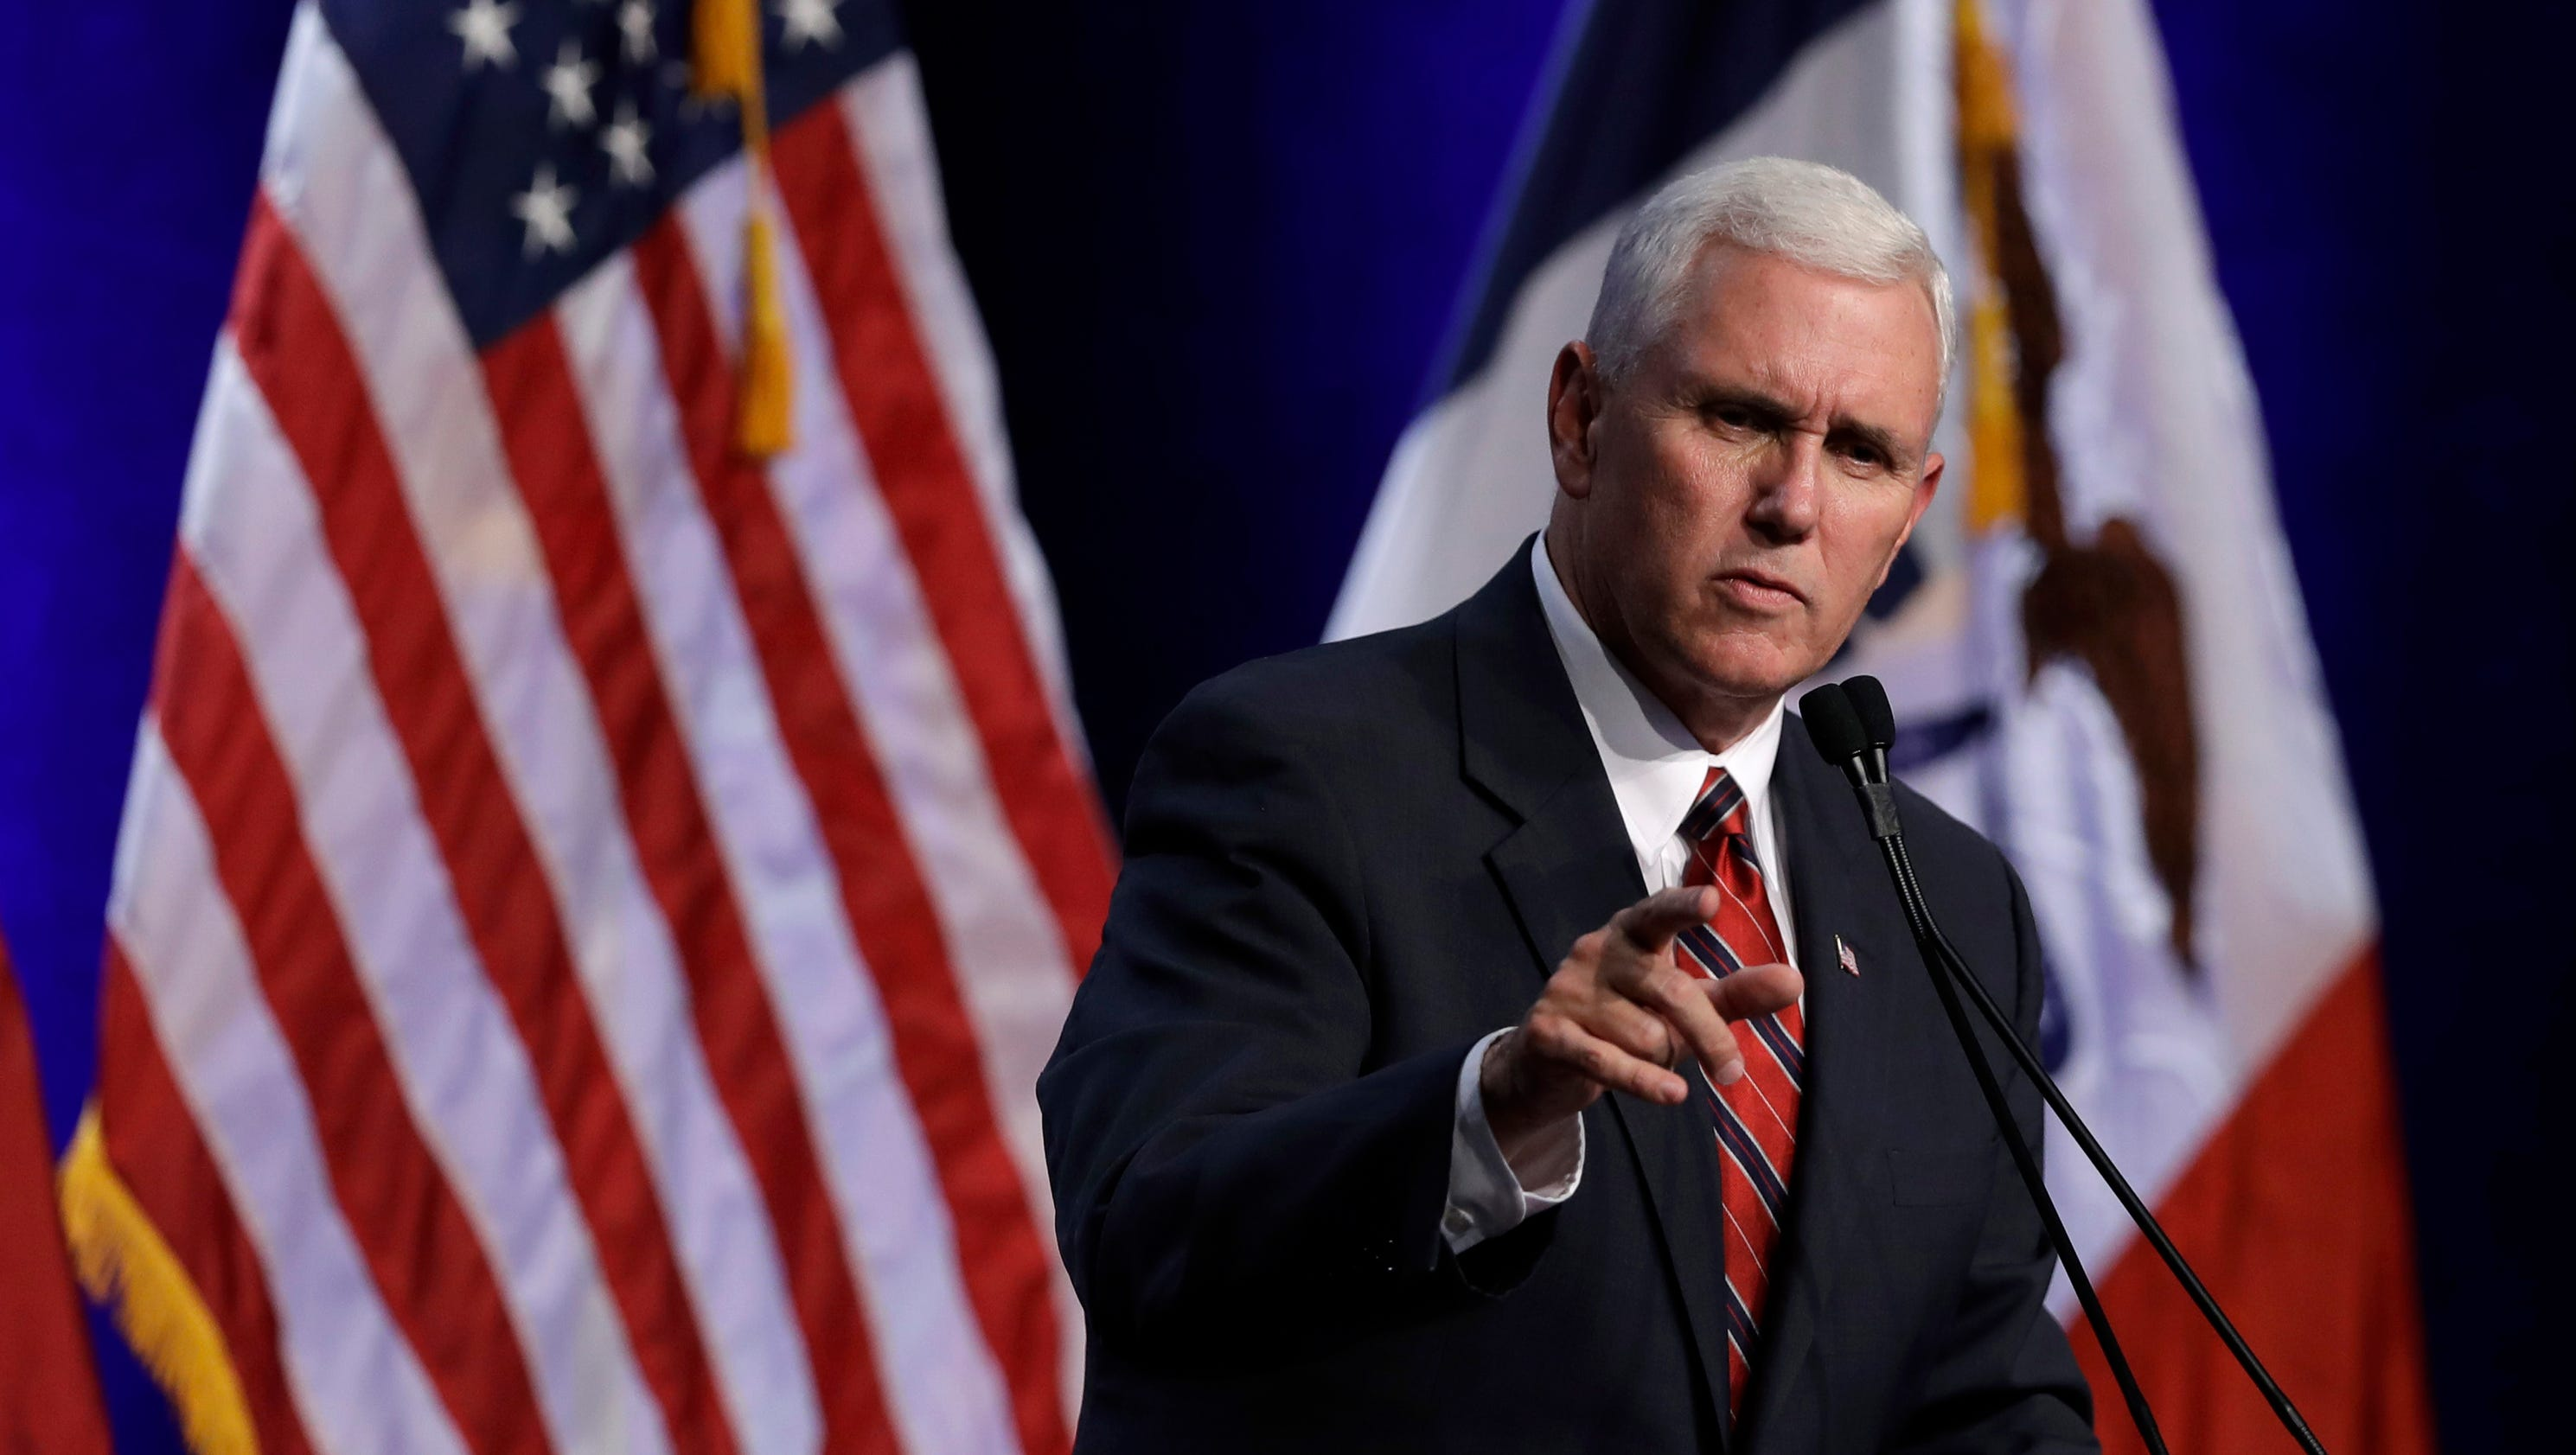 Pence Gennifer Flowers will not be at debate